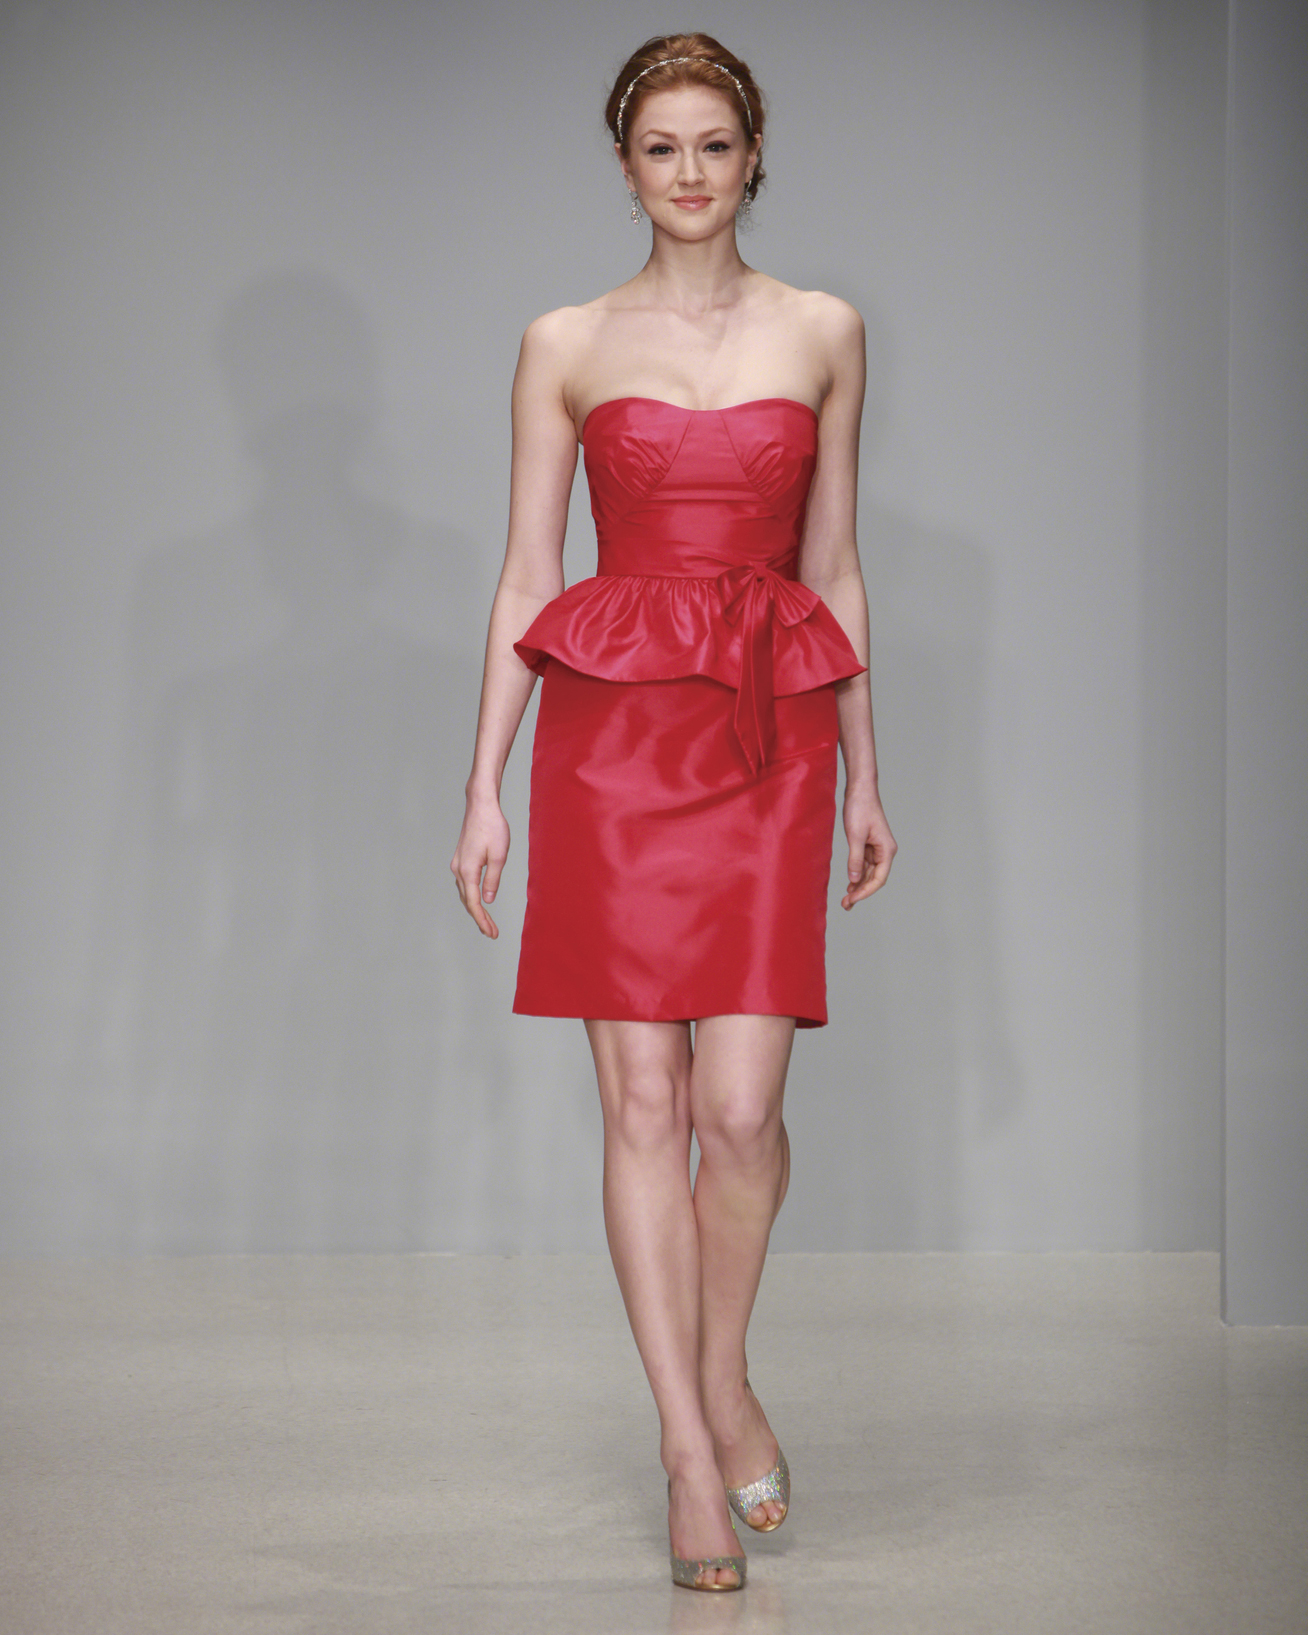 Short Red Peplum Bridesmaid Dress